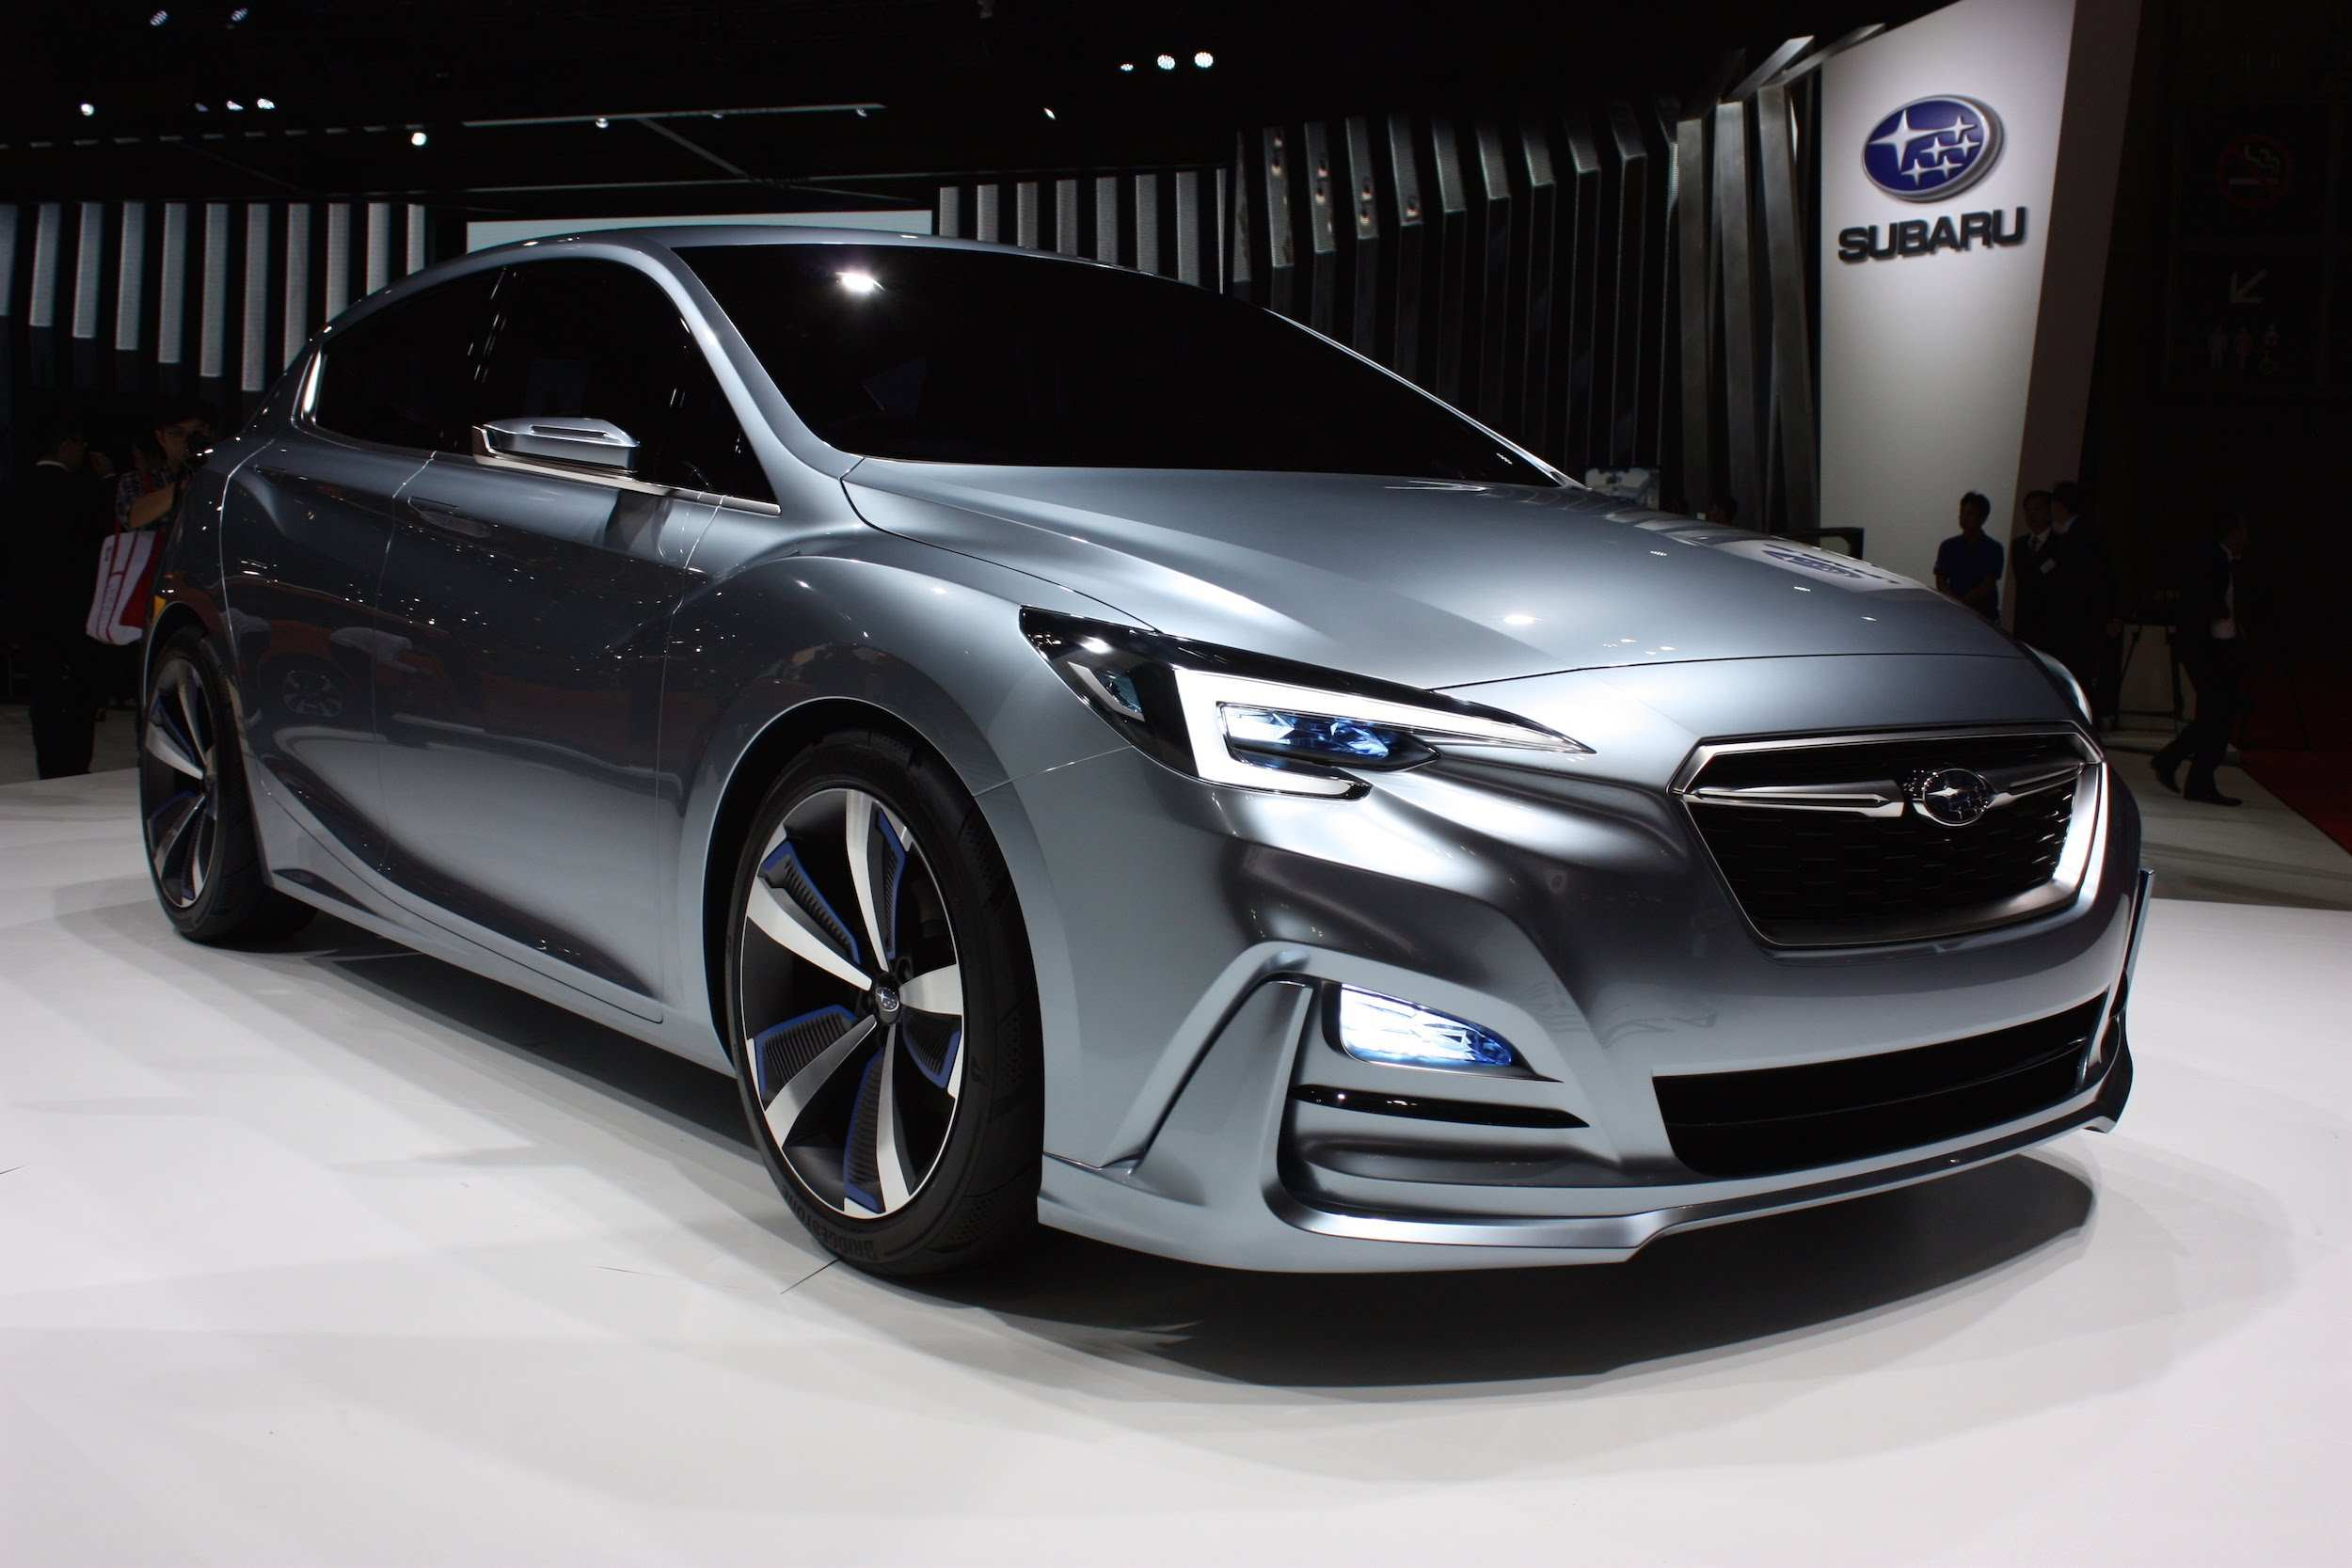 97 Concept of Subaru Prominence 2020 Configurations by Subaru Prominence 2020